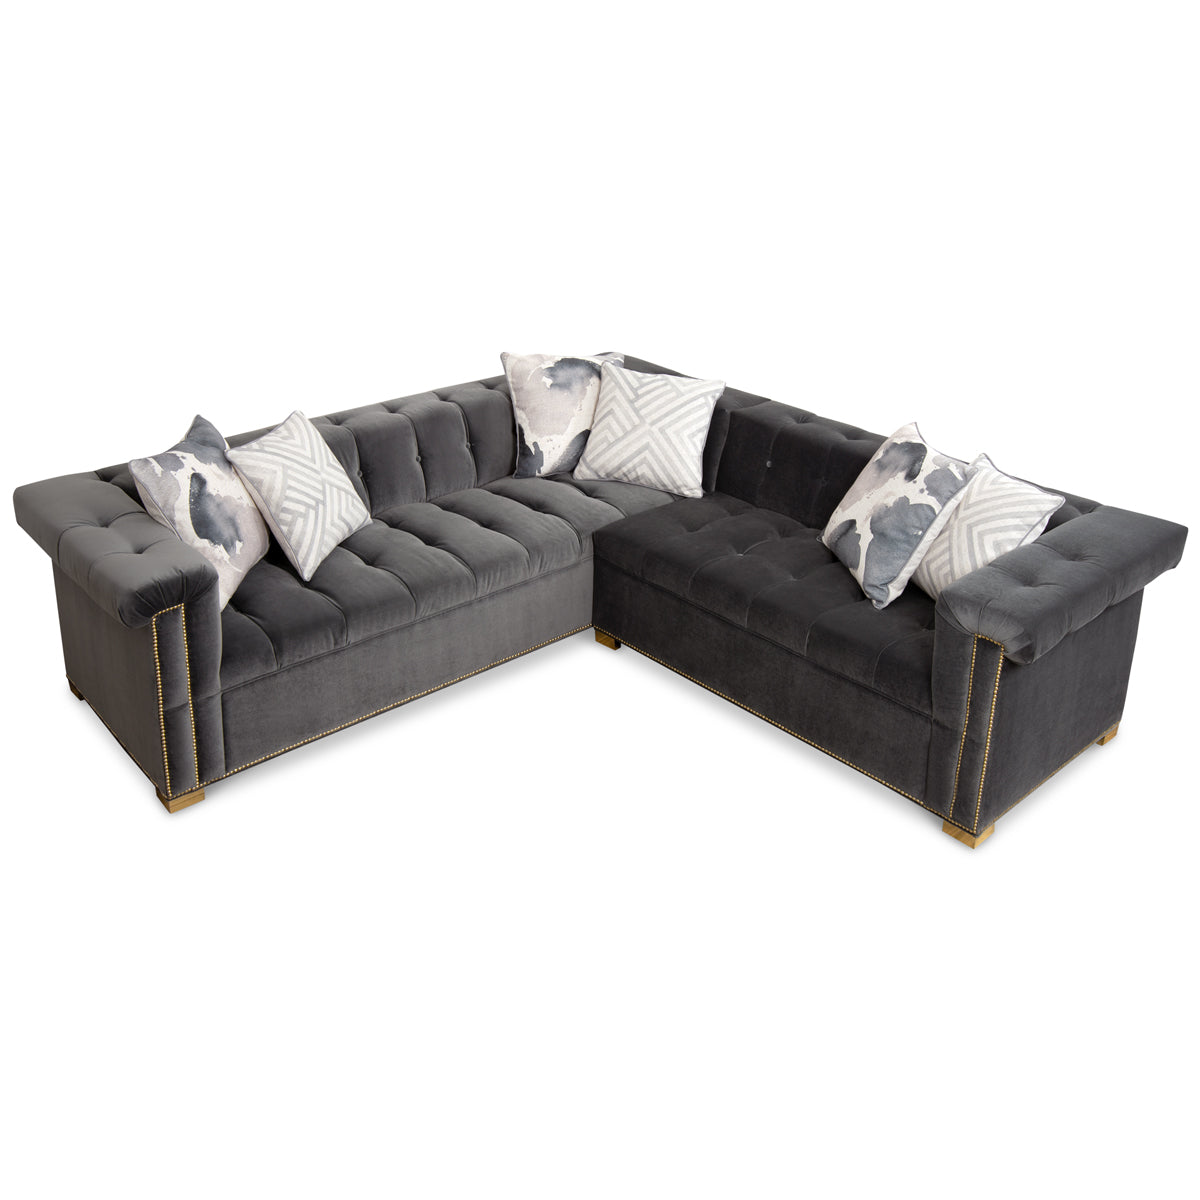 Dean Martin Sectional in Dark Grey Velvet - ModShop1.com